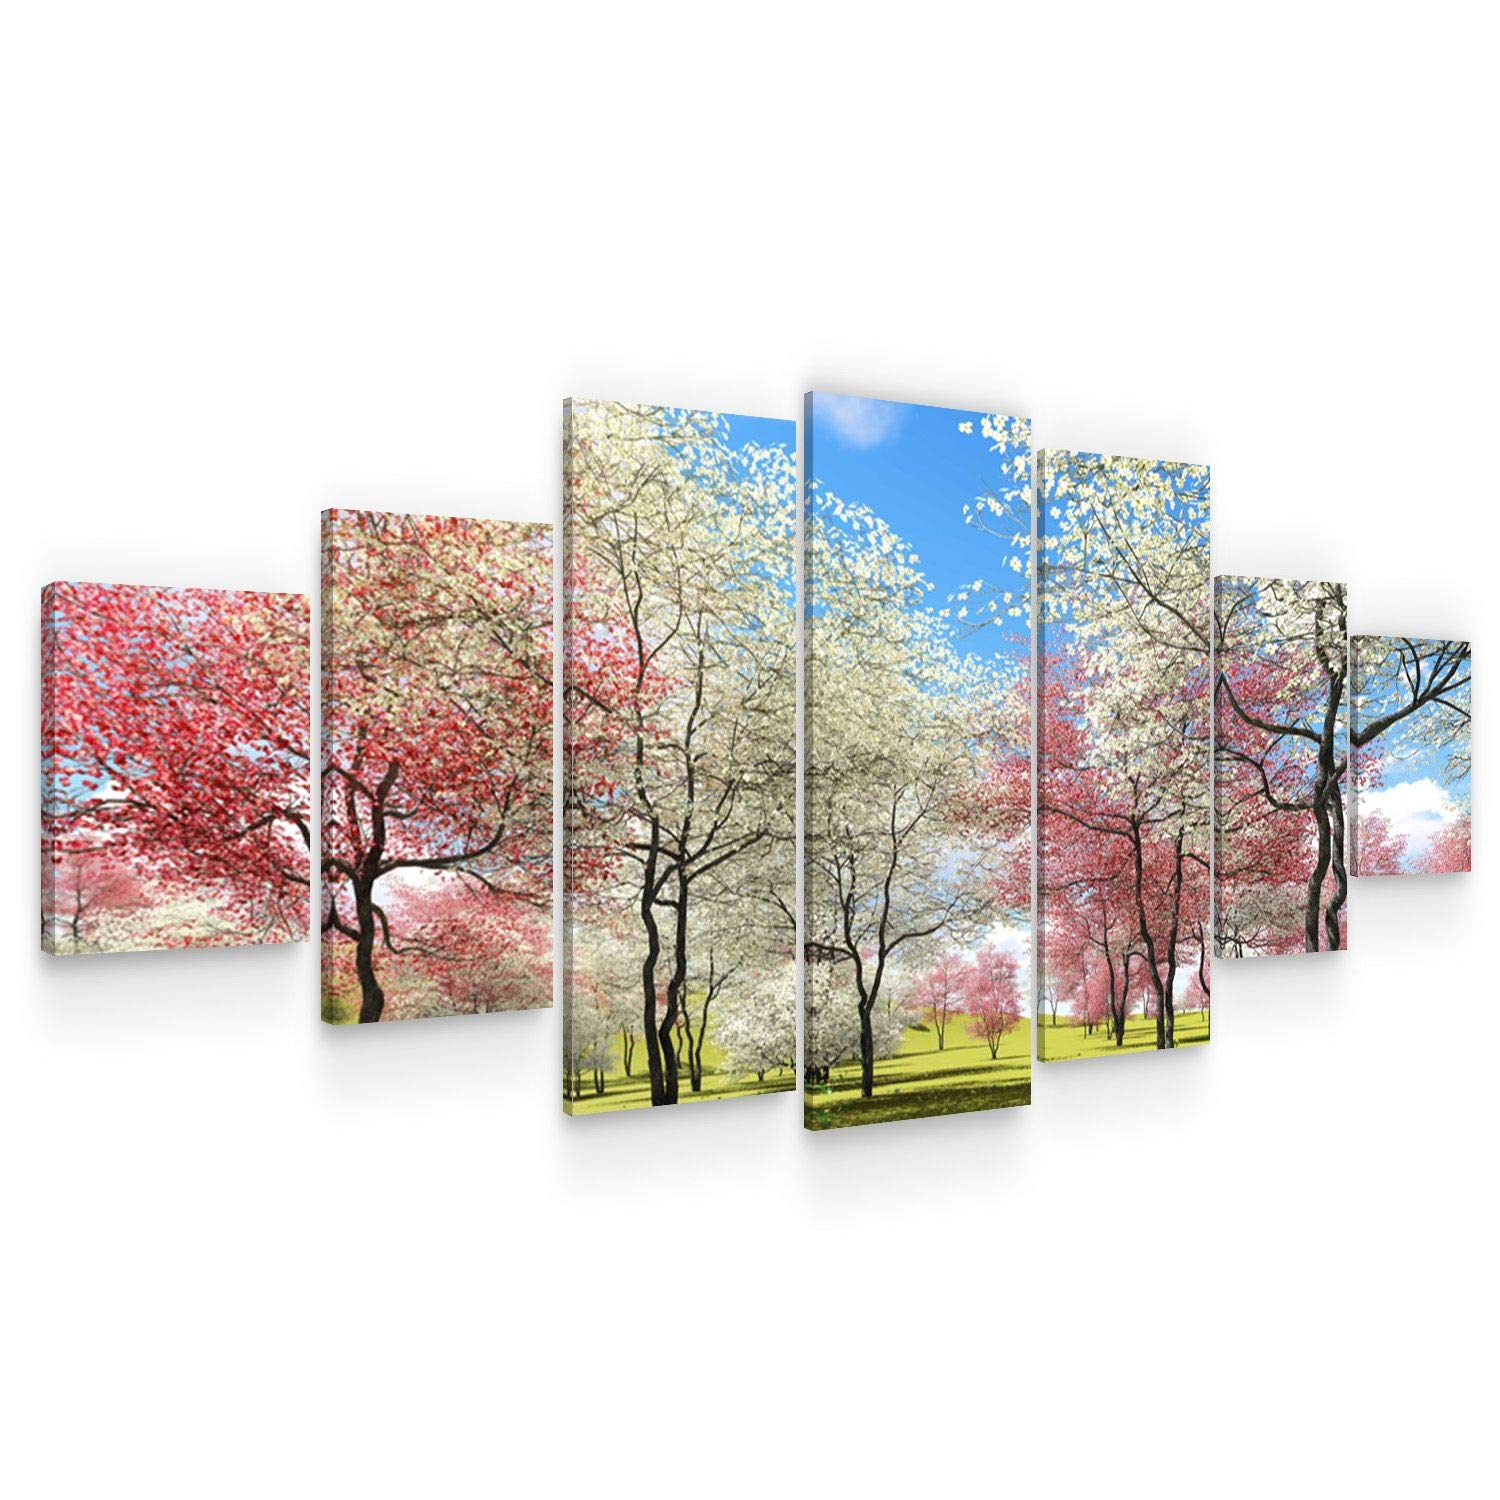 STARTONIGHT Large Canvas Wall Art Nature - Trees Bloom in The Spring, Pink and White Flowers - Huge Framed Modern Set of 7 Panels 40 x 95 Inches